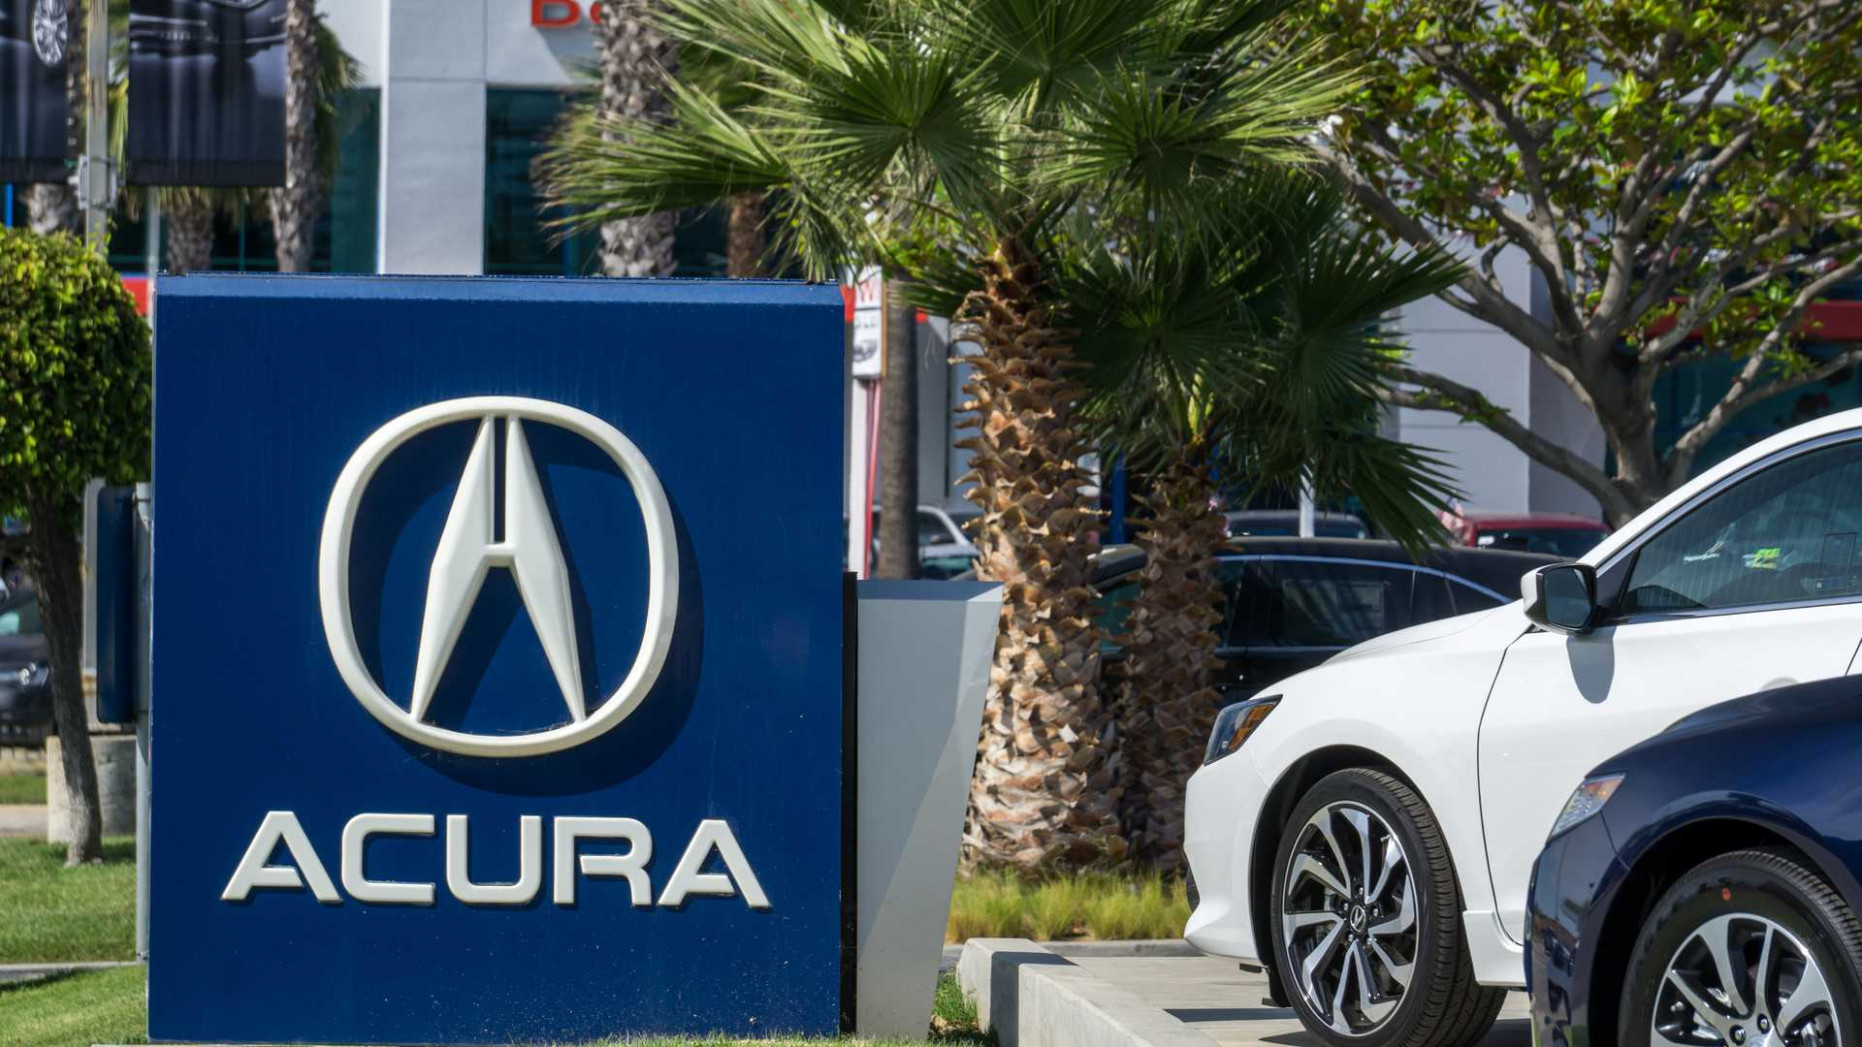 The Best Acura Extended Warranty Options